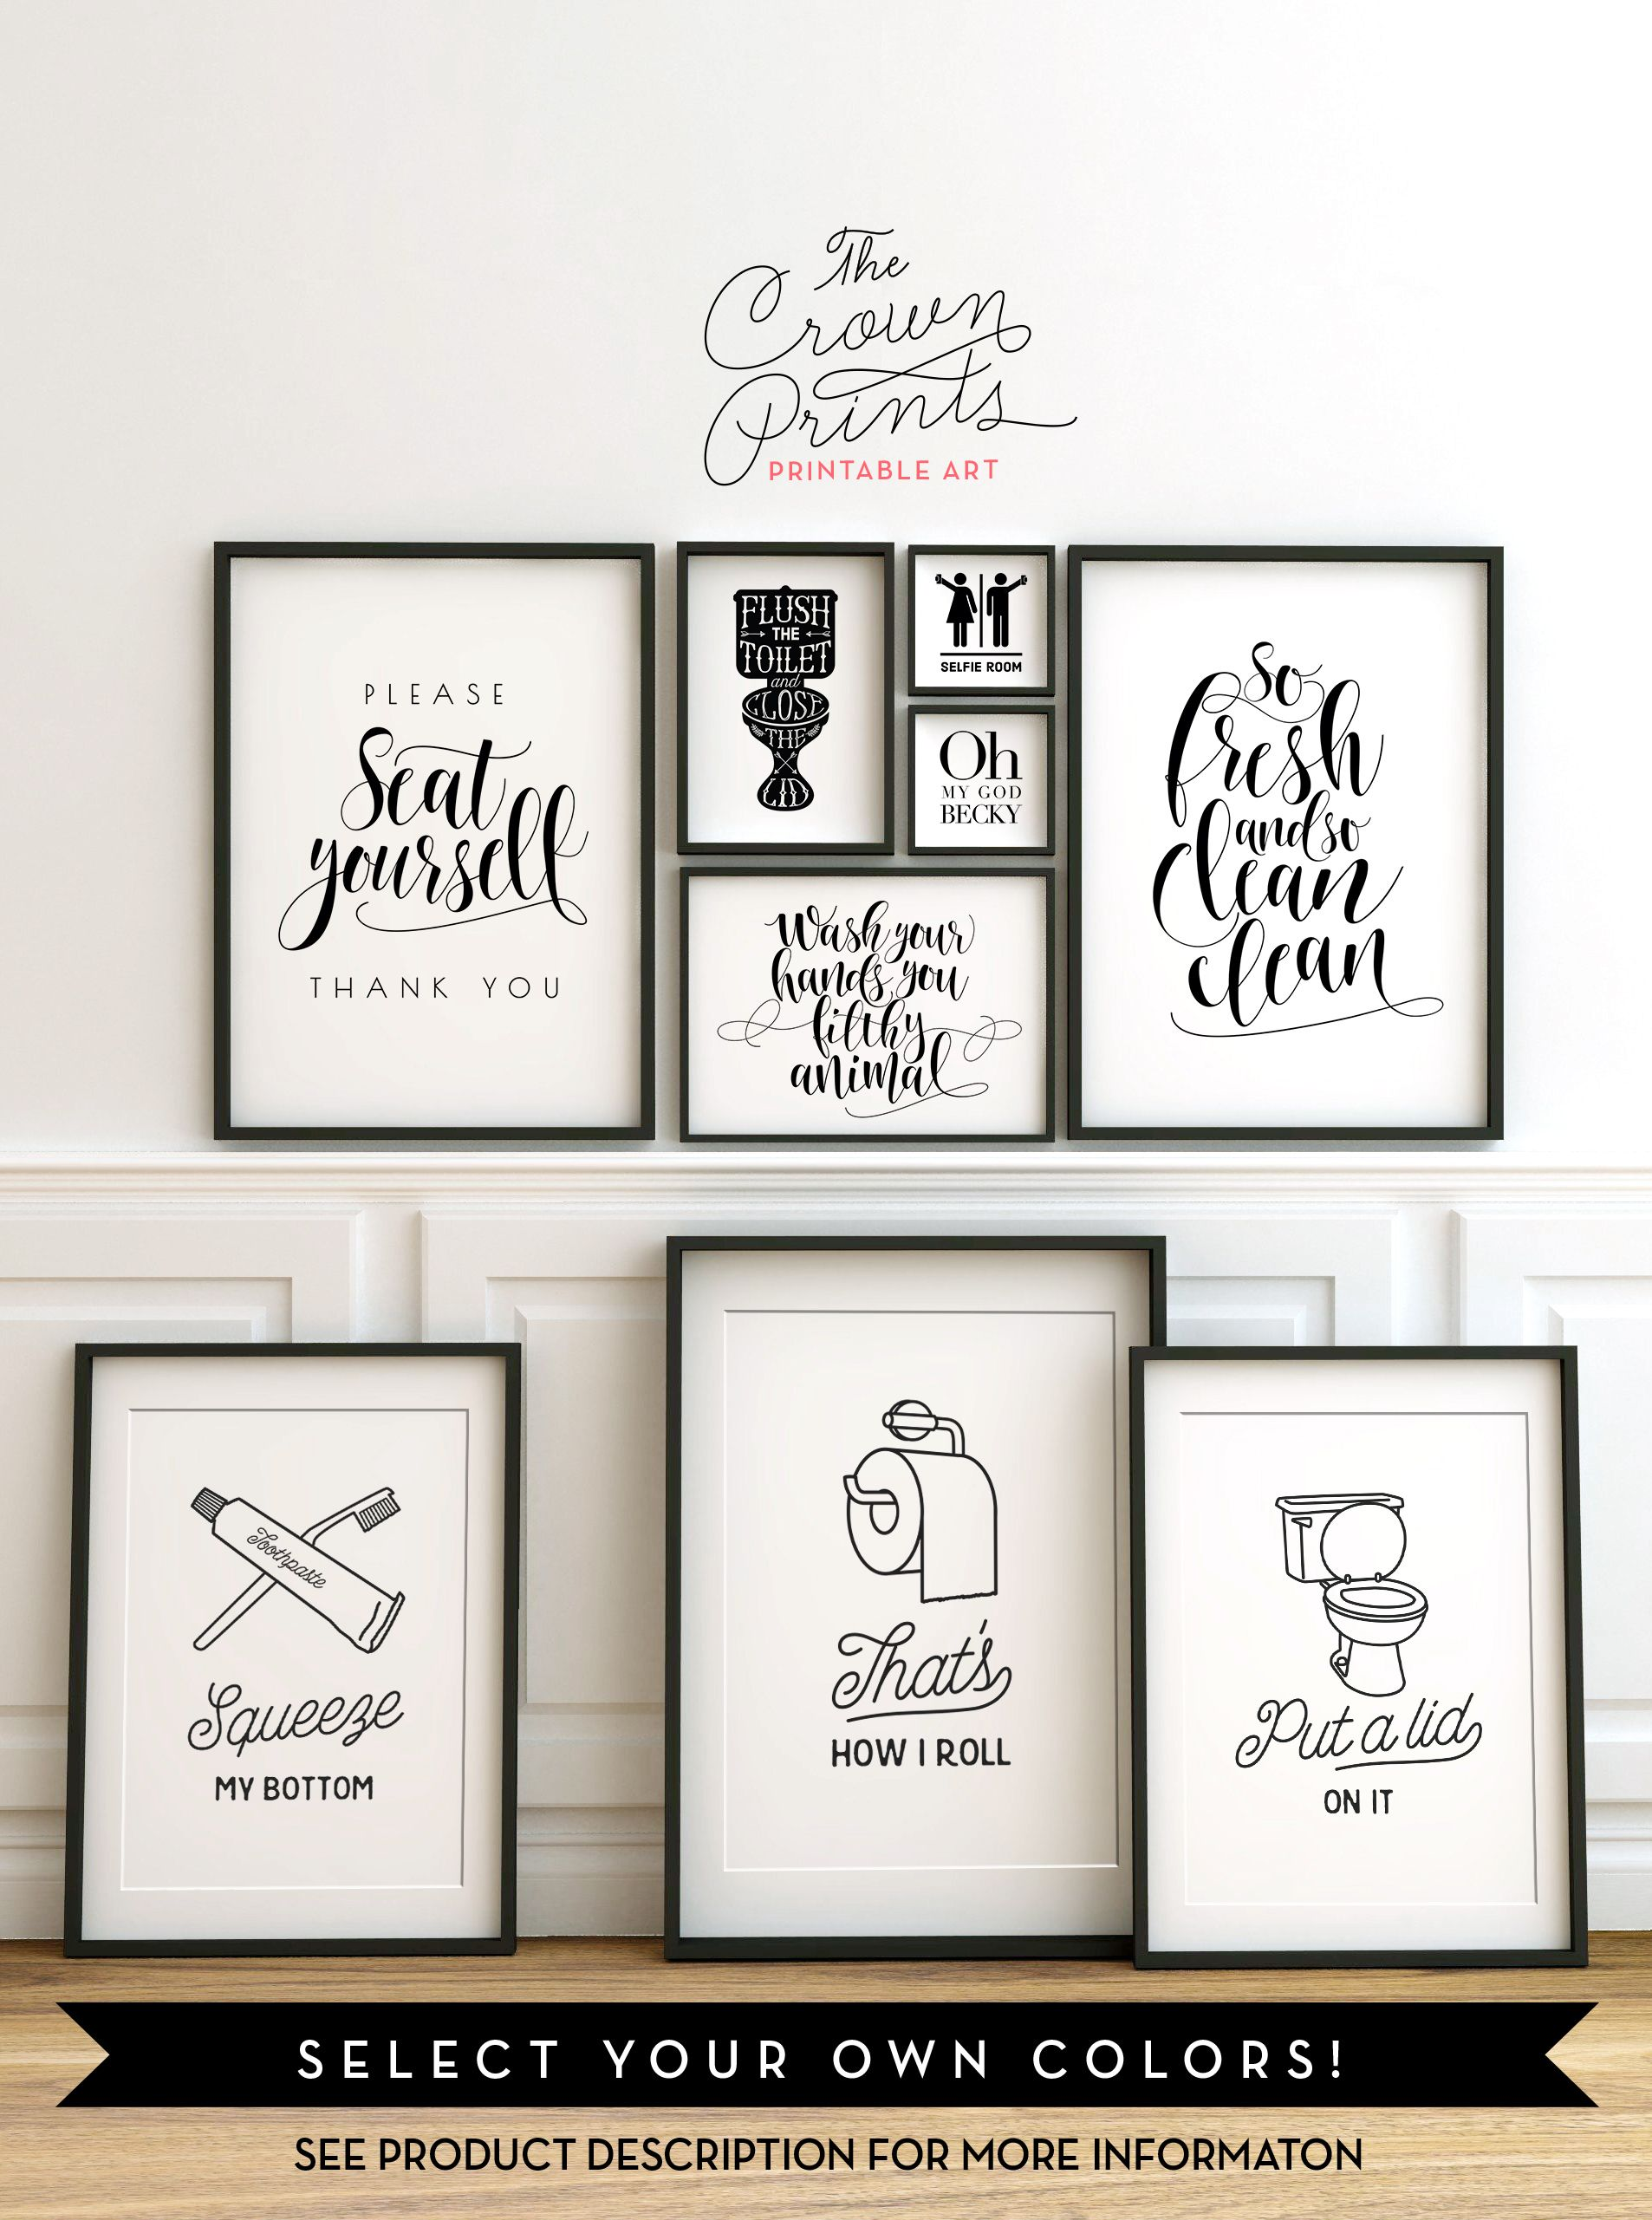 Superior Printable Bathroom Wall Art From The Crown Prints On Etsy   Lots Of Funny  Quotes And Designs. Instant Bathroom Decor! Http://www.etsy.com/shop/ ...